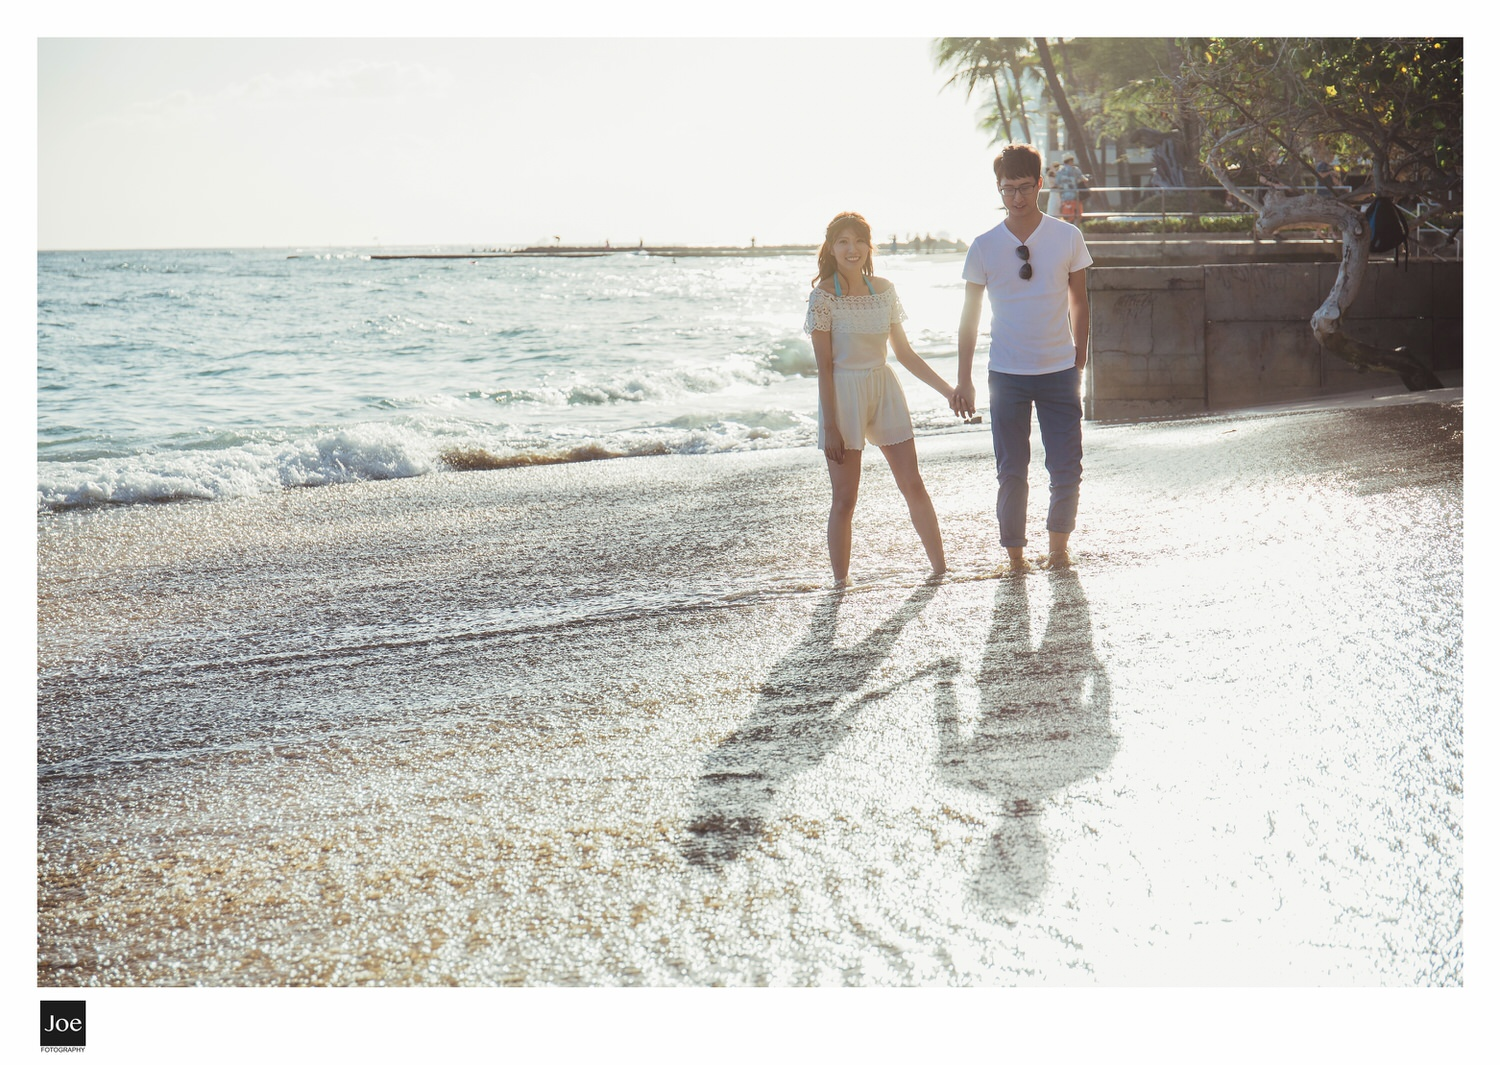 123-waikiki-beach-hawaii-pre-wedding-tiffany-tony-joe-fotography.jpg